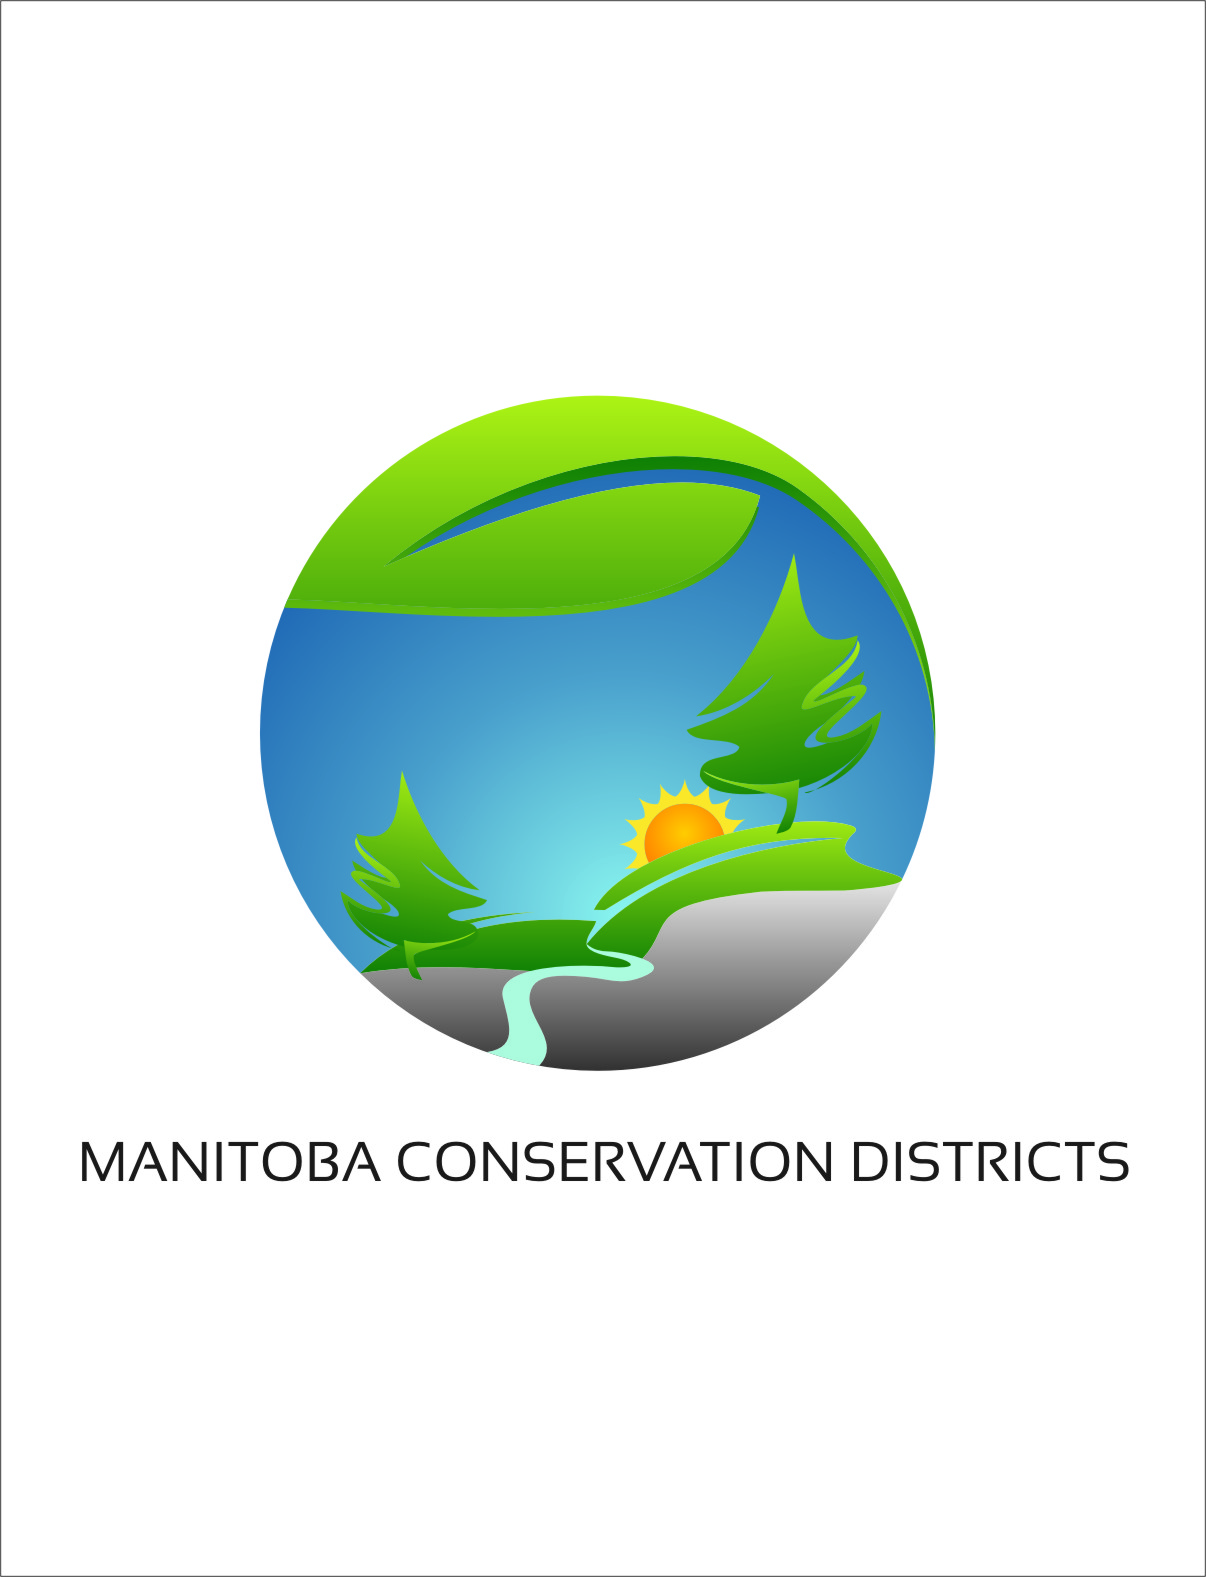 Logo Design by Ngepet_art - Entry No. 95 in the Logo Design Contest Manitoba Conservation Districts Logo Design.